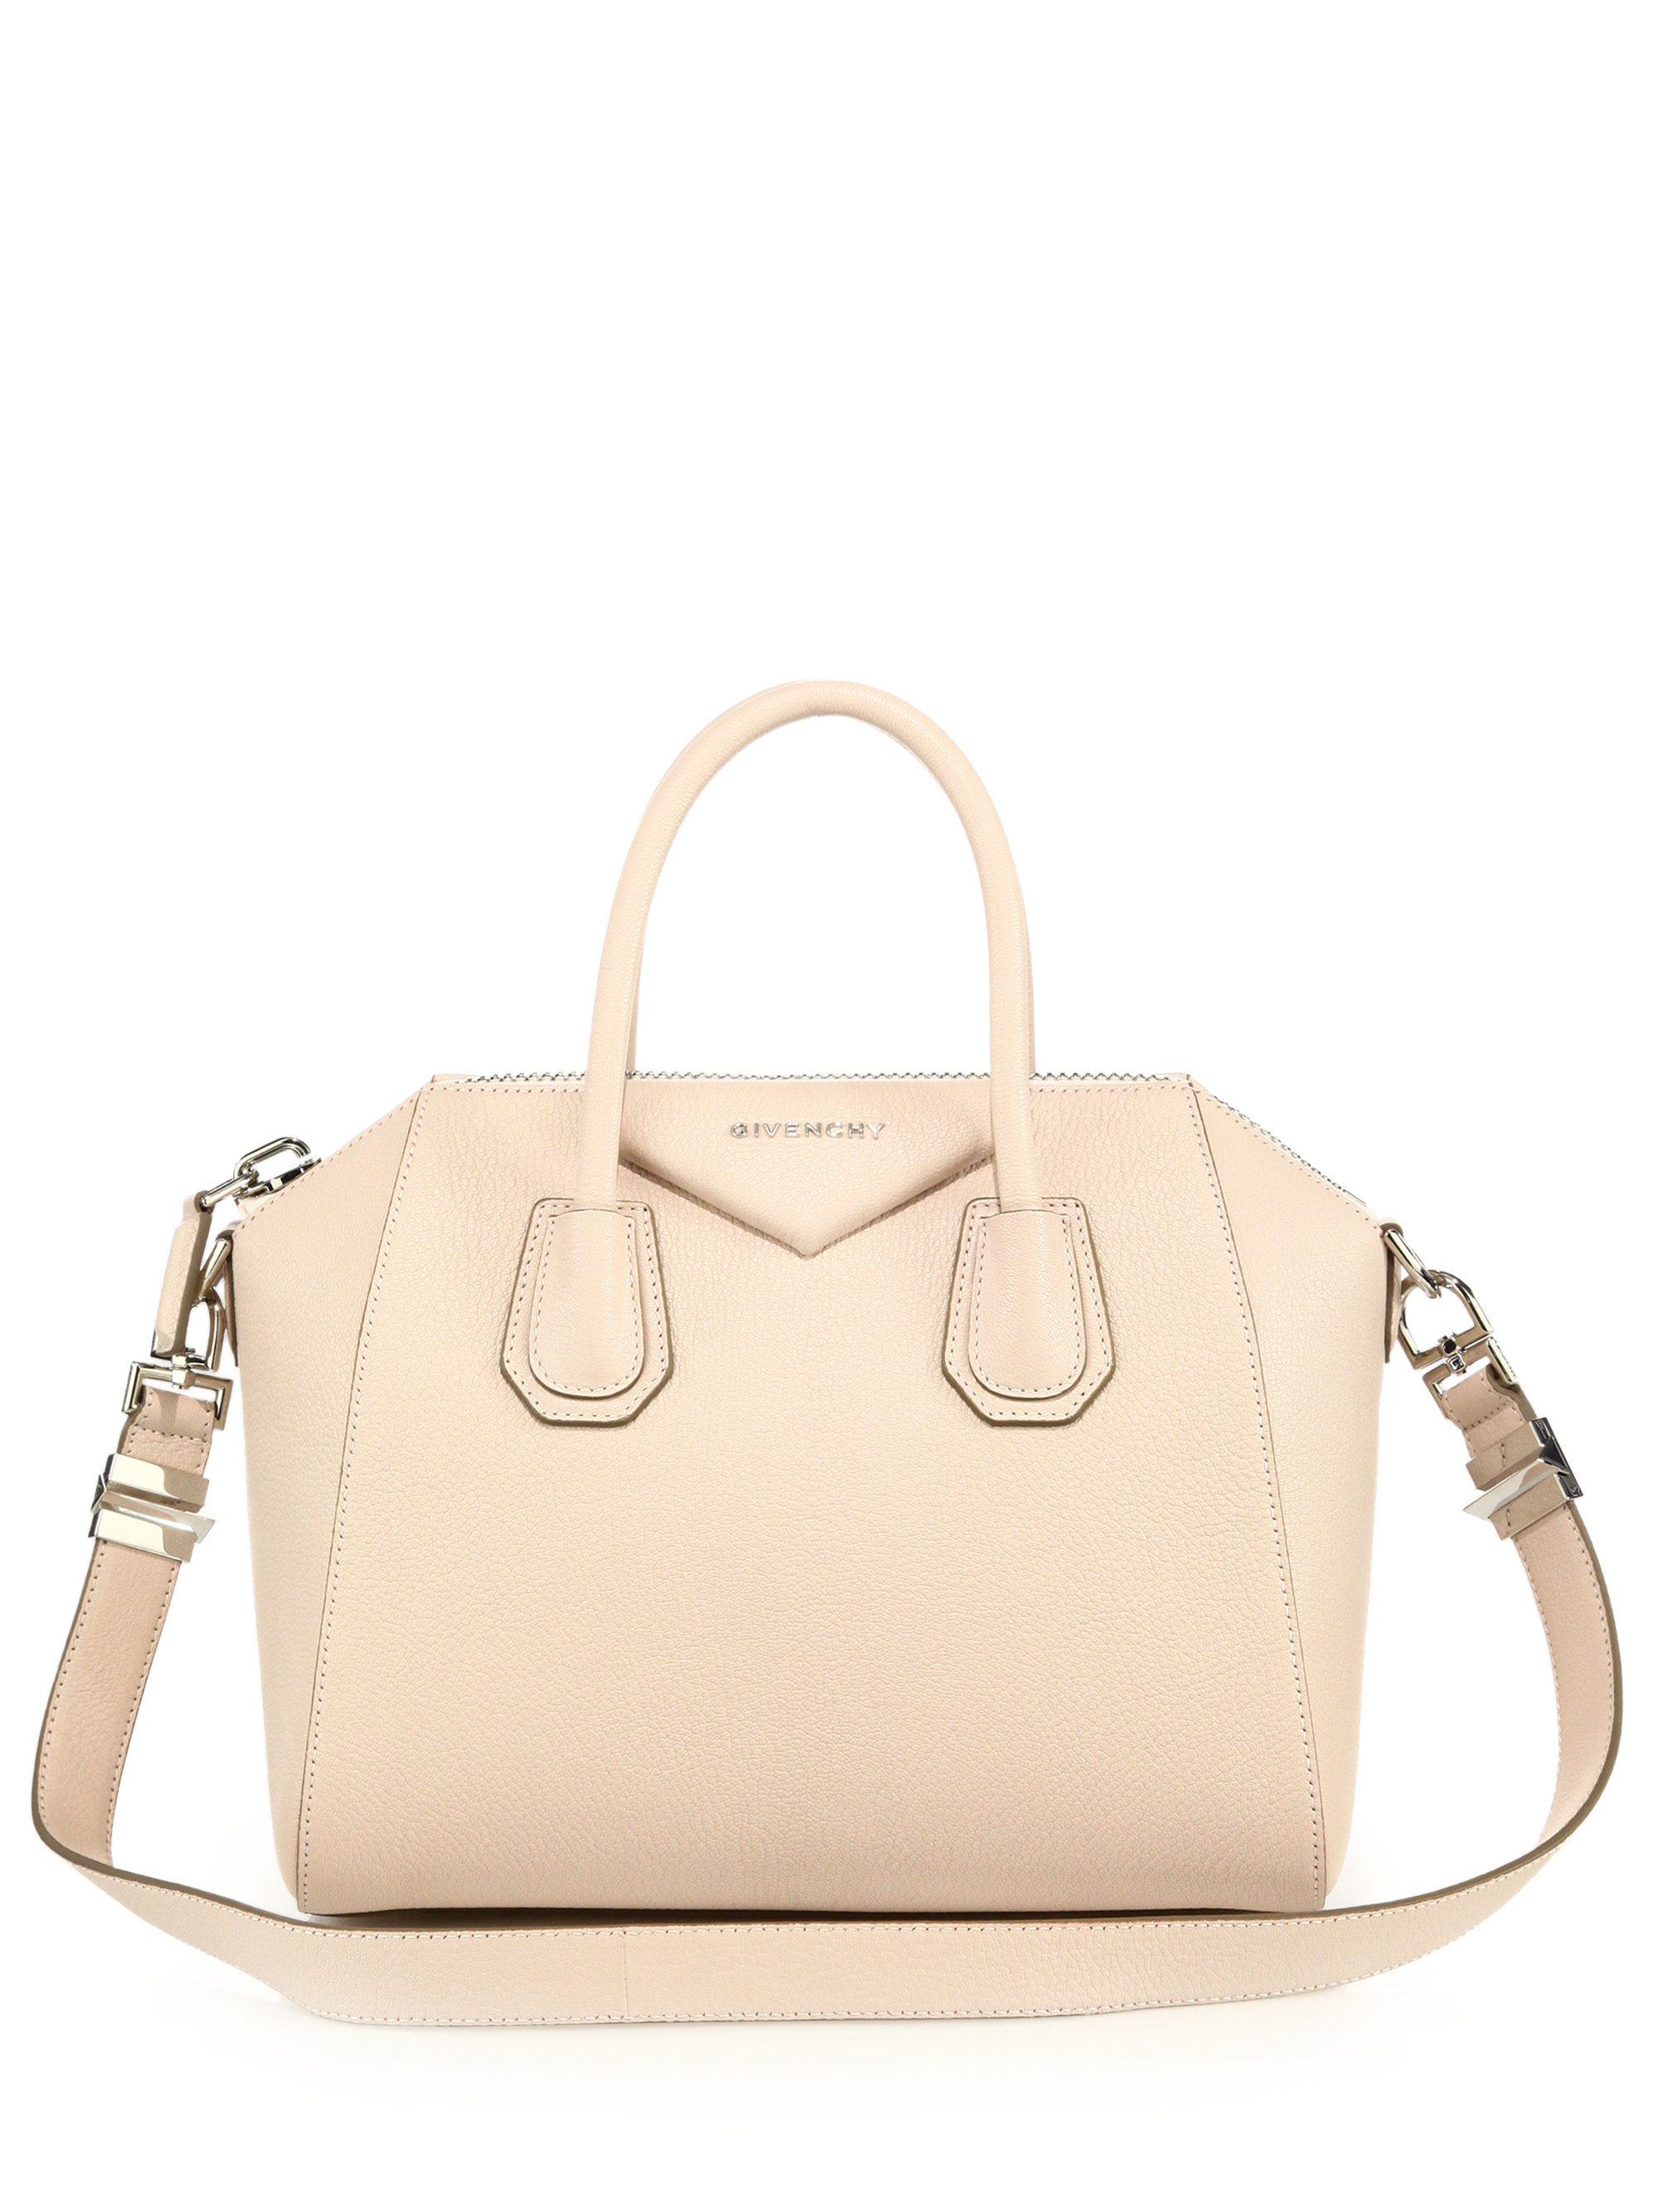 38fdc9ee4d Givenchy Antigona Small Leather Satchel in Natural - Lyst